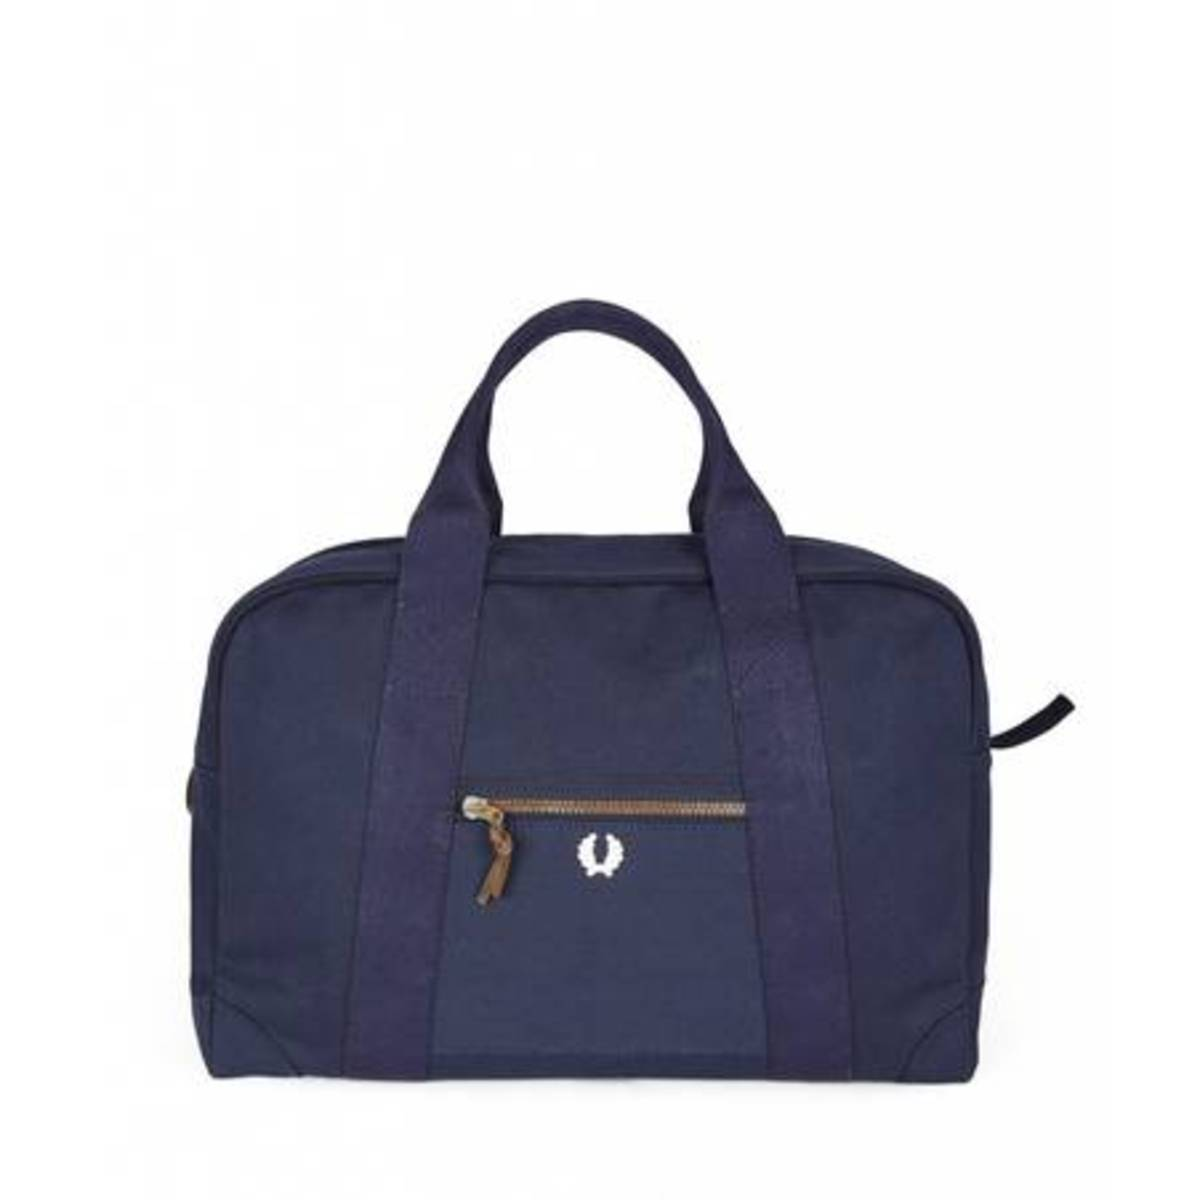 Sac-de-voyage-en-toile-Fred-Perry_reference2